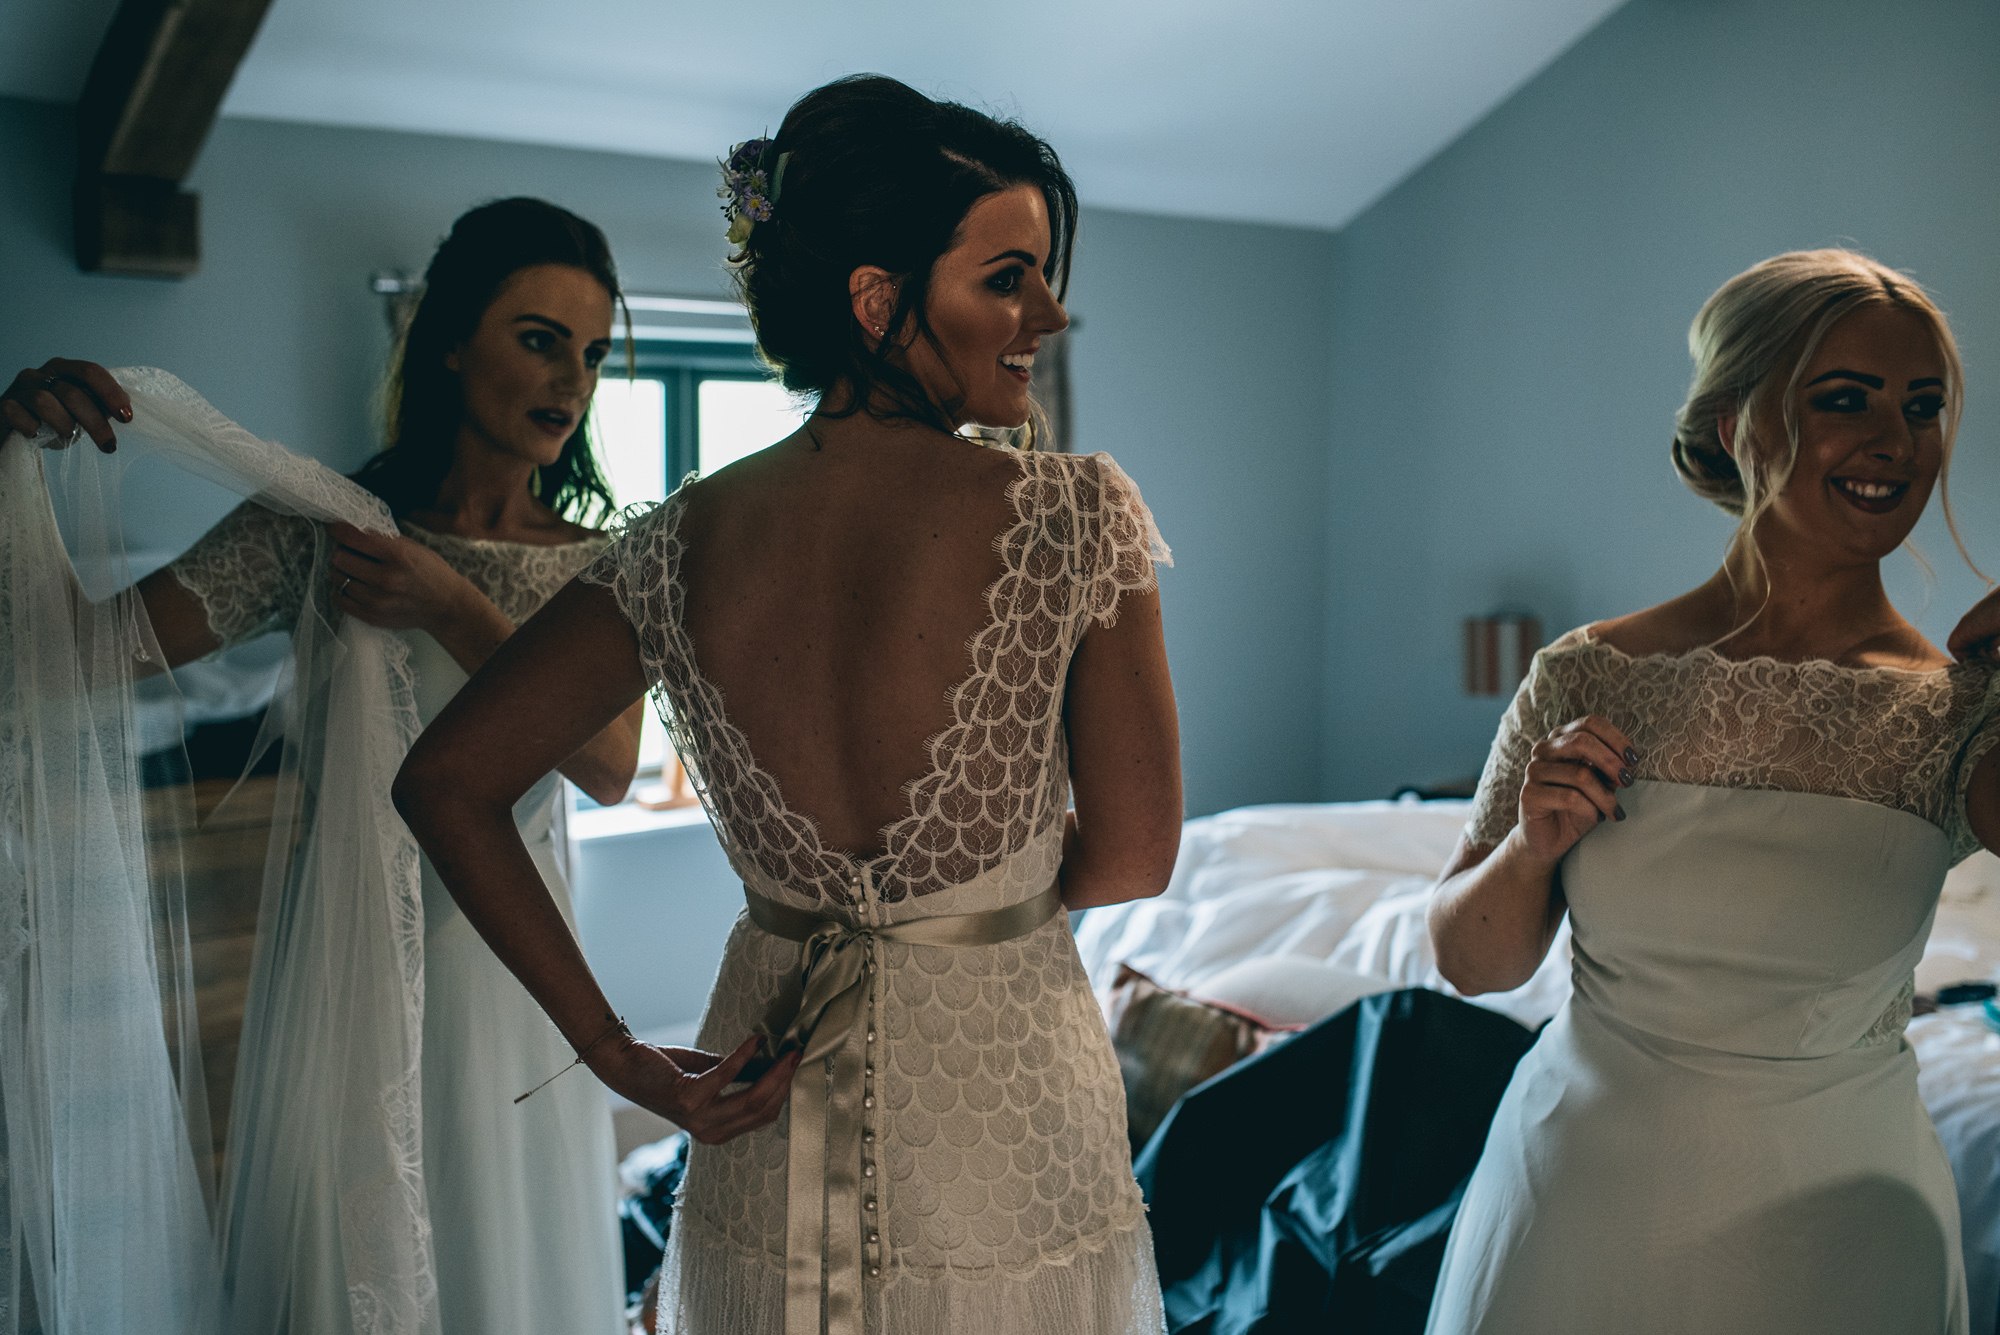 Kate-Beaumont-Sheffield-Lucy-Bohemian-Lace-Dress-Barn-Wedding-Cumbria-2.jpg